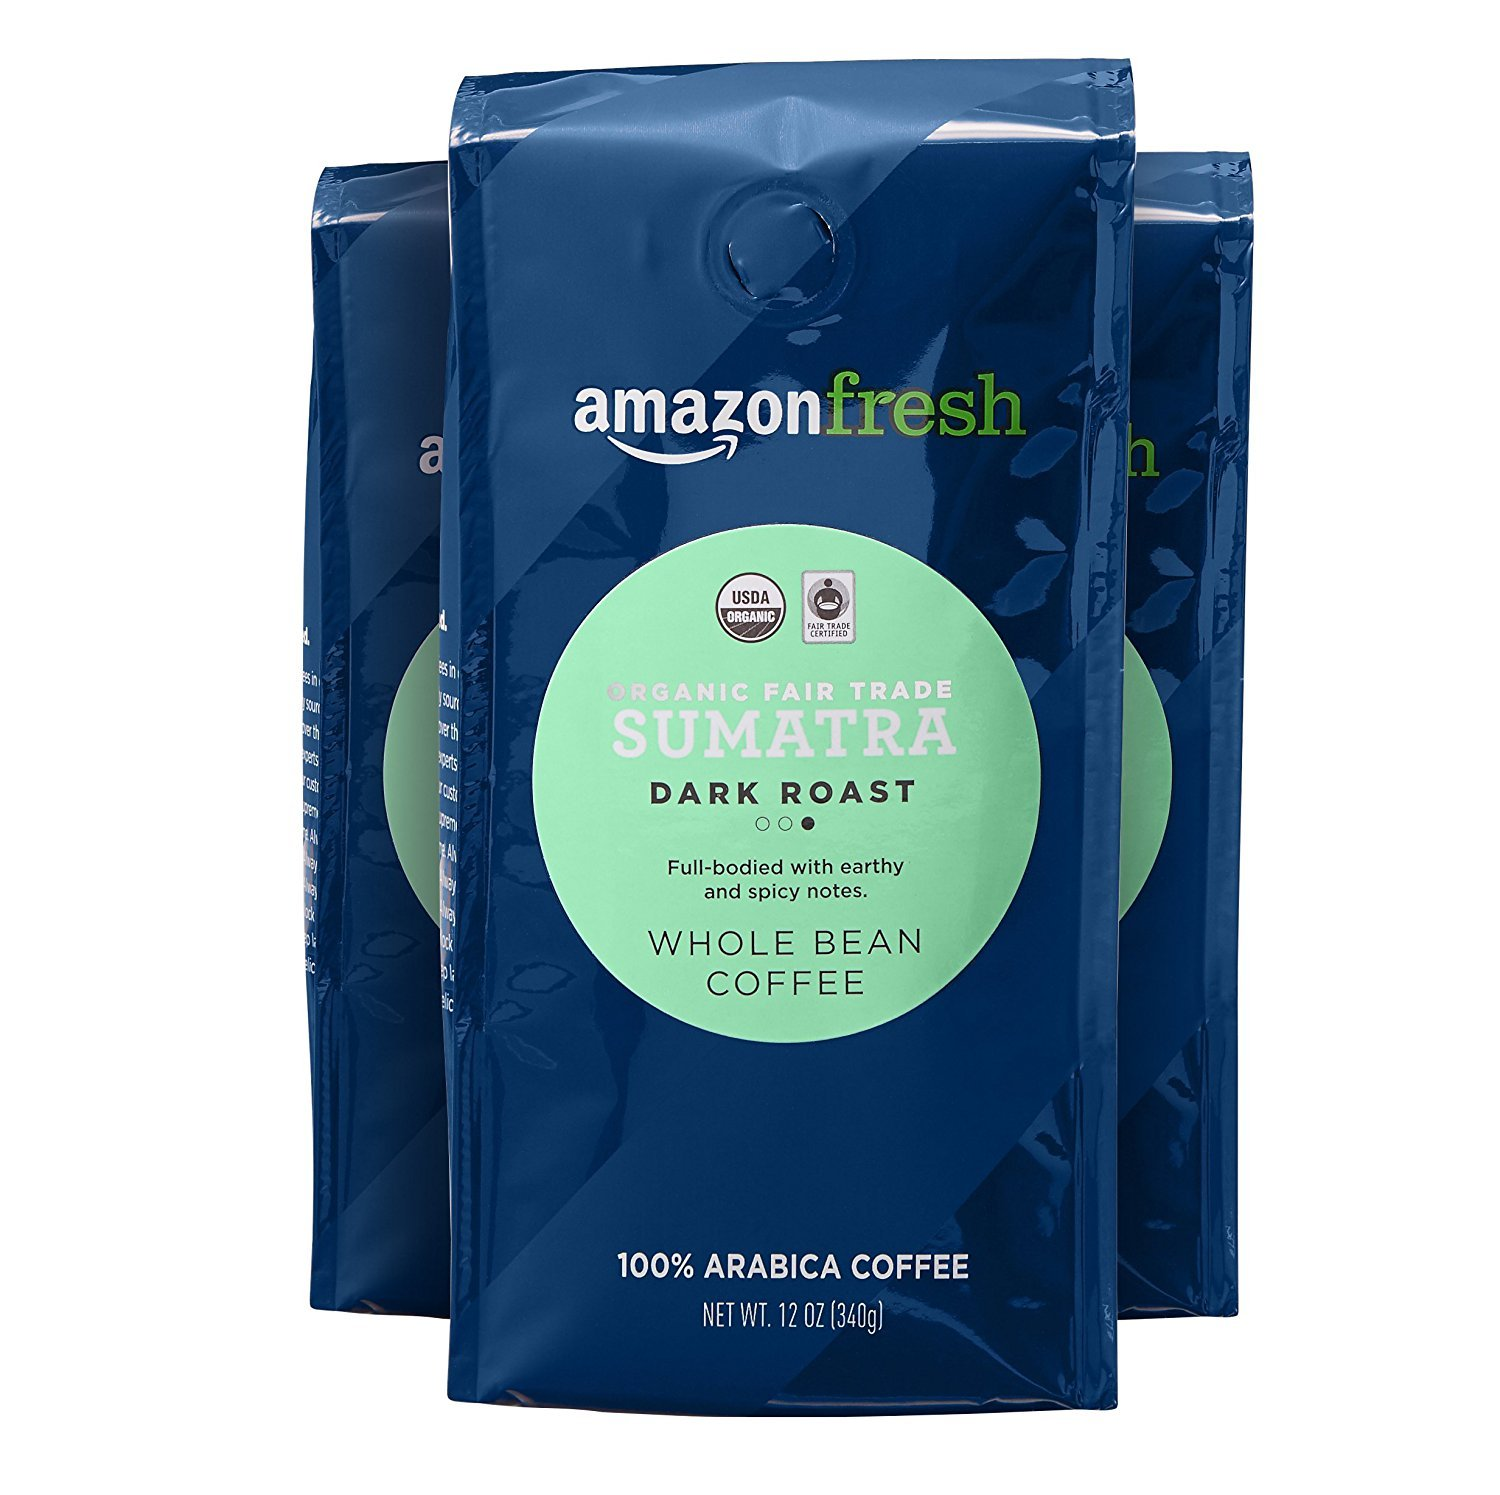 AmazonFresh Organic Fair Trade Sumatra Whole Bean Coffee, Dark Roast, 12 Ounce (Pack of 3) by AmazonFresh